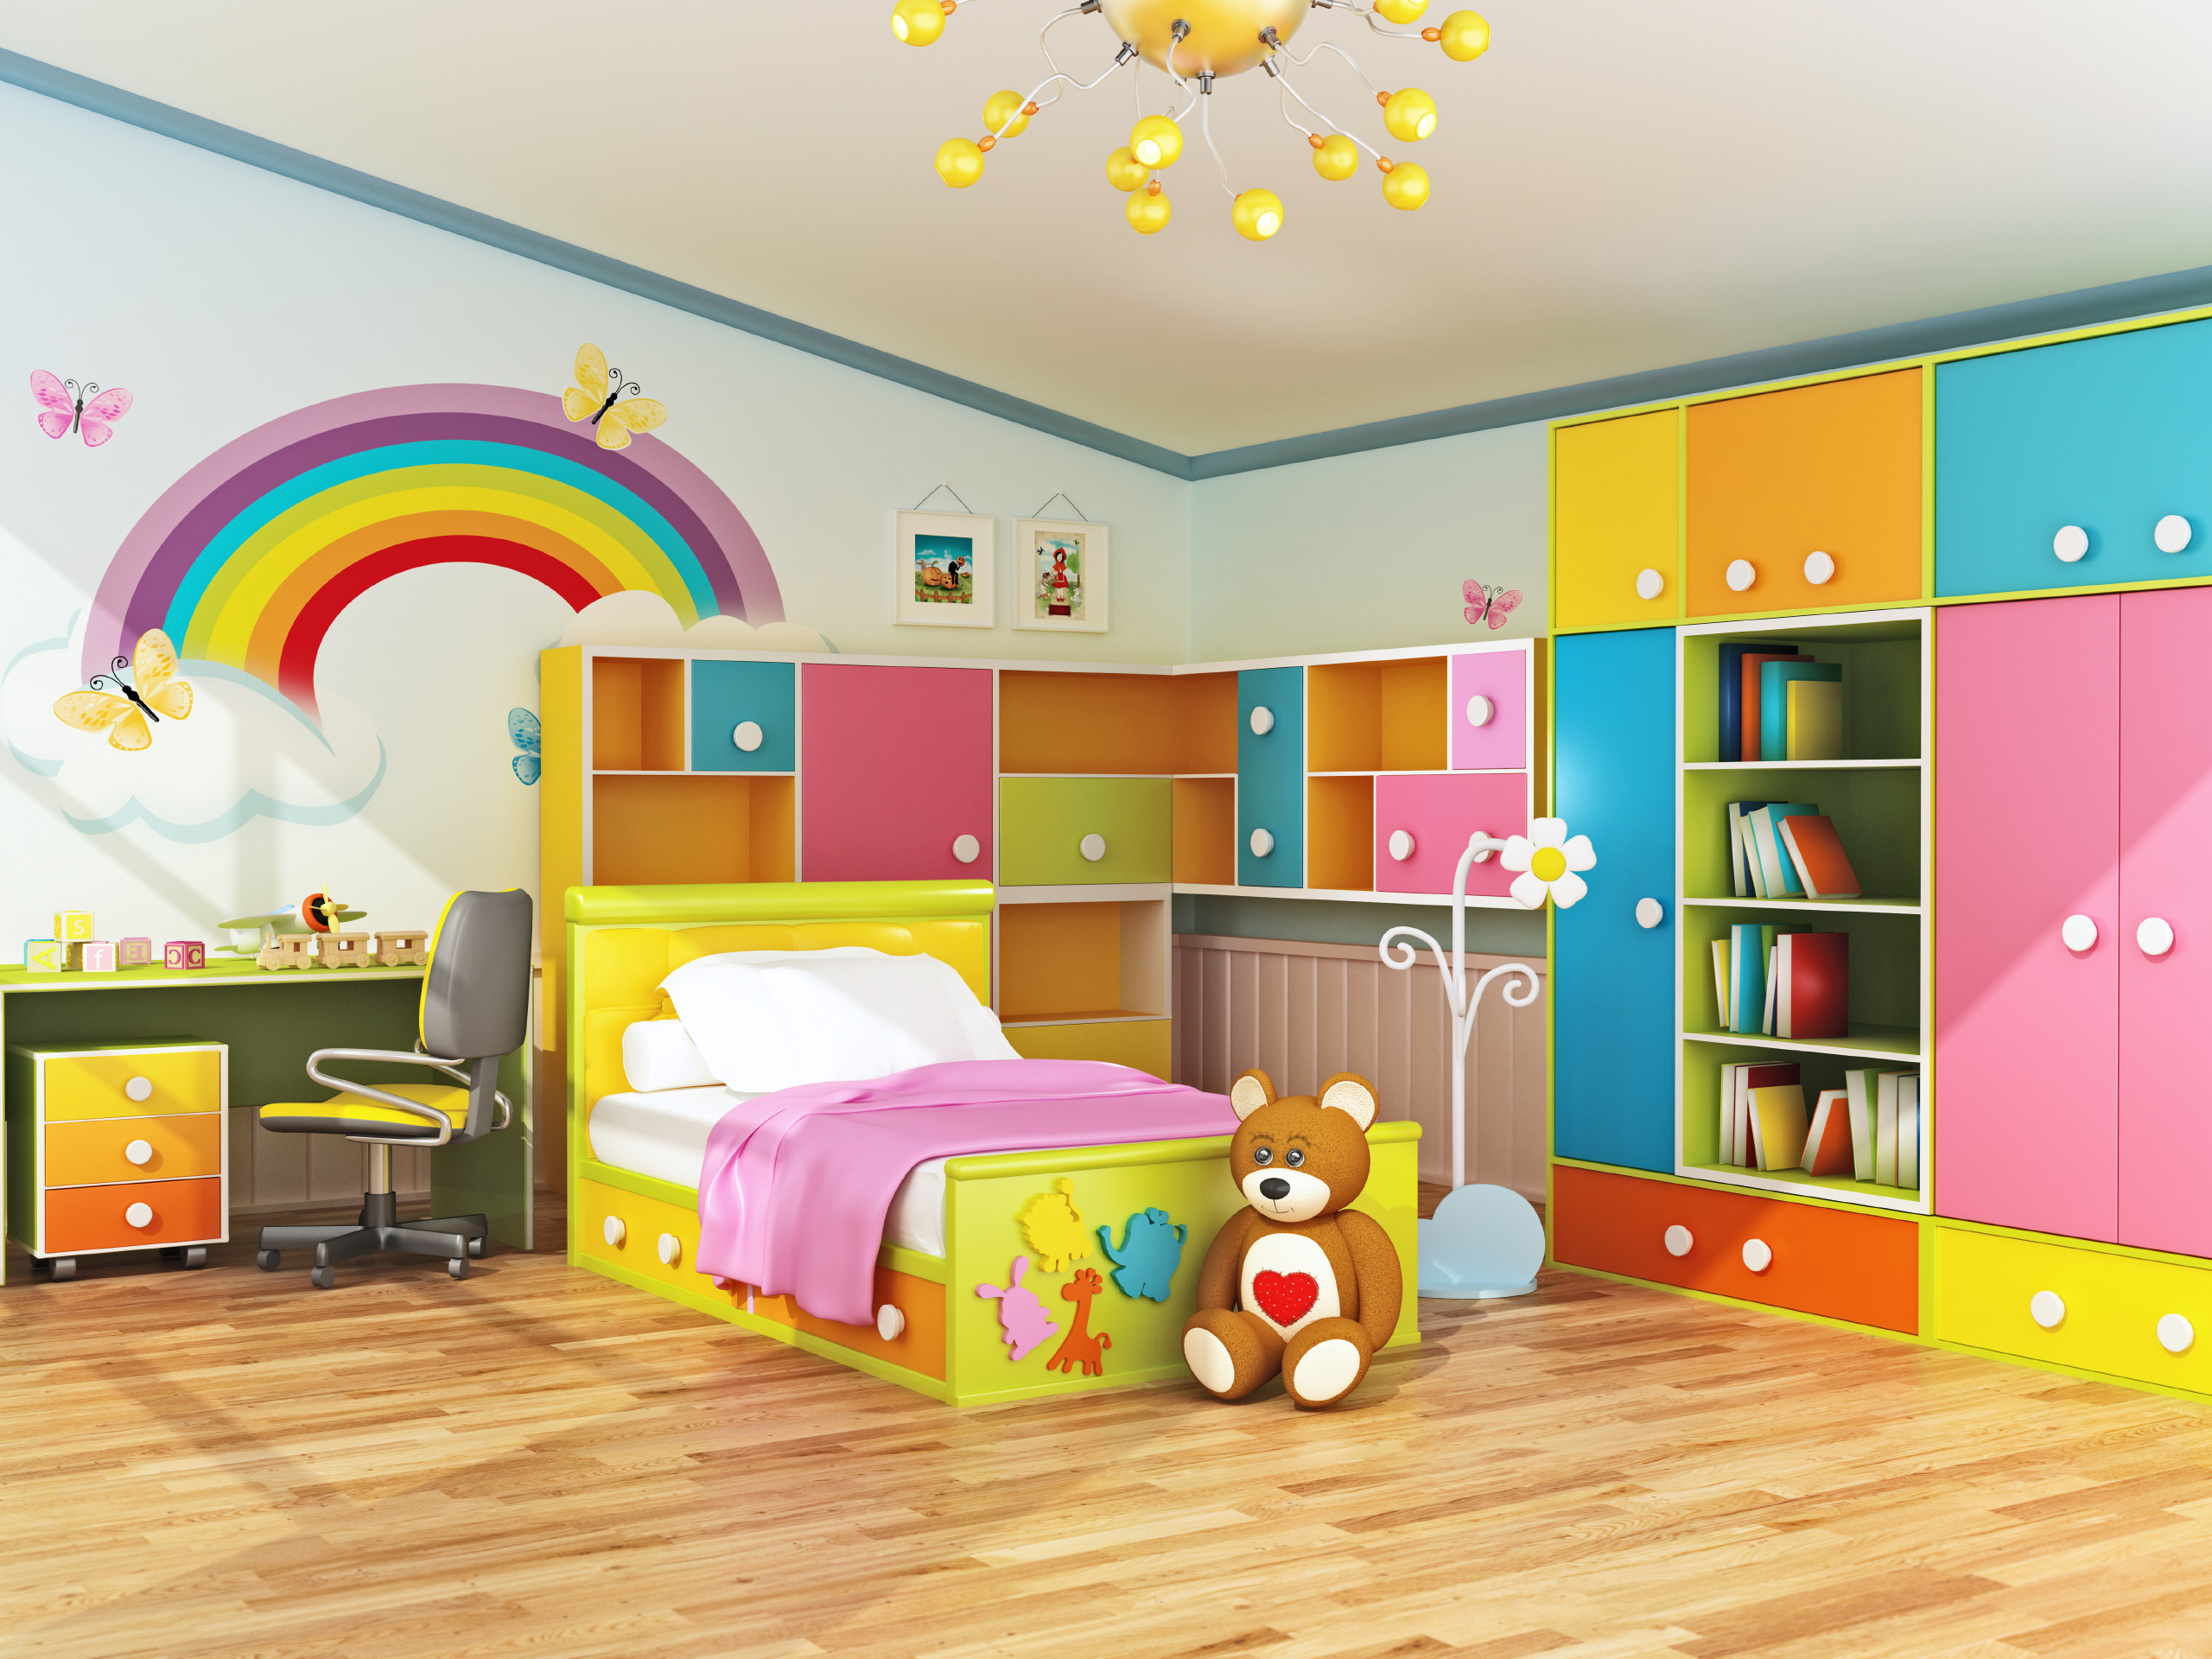 Kids Bedroom Design Plan Ahead when Decorating Kids Bedrooms